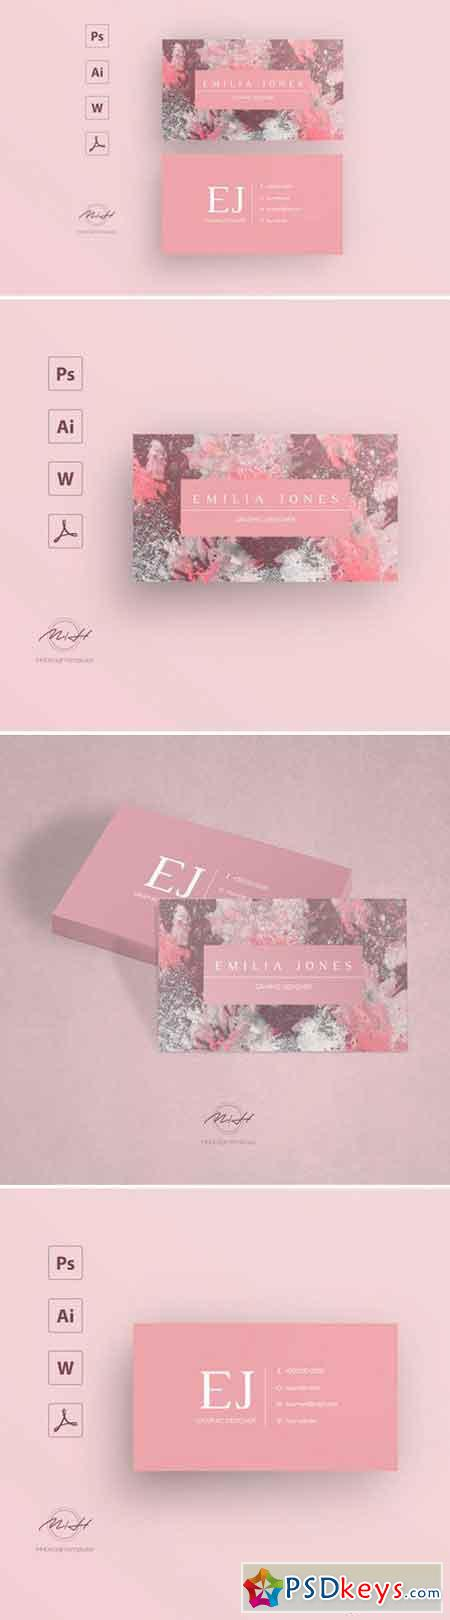 Marble business card template 2543756